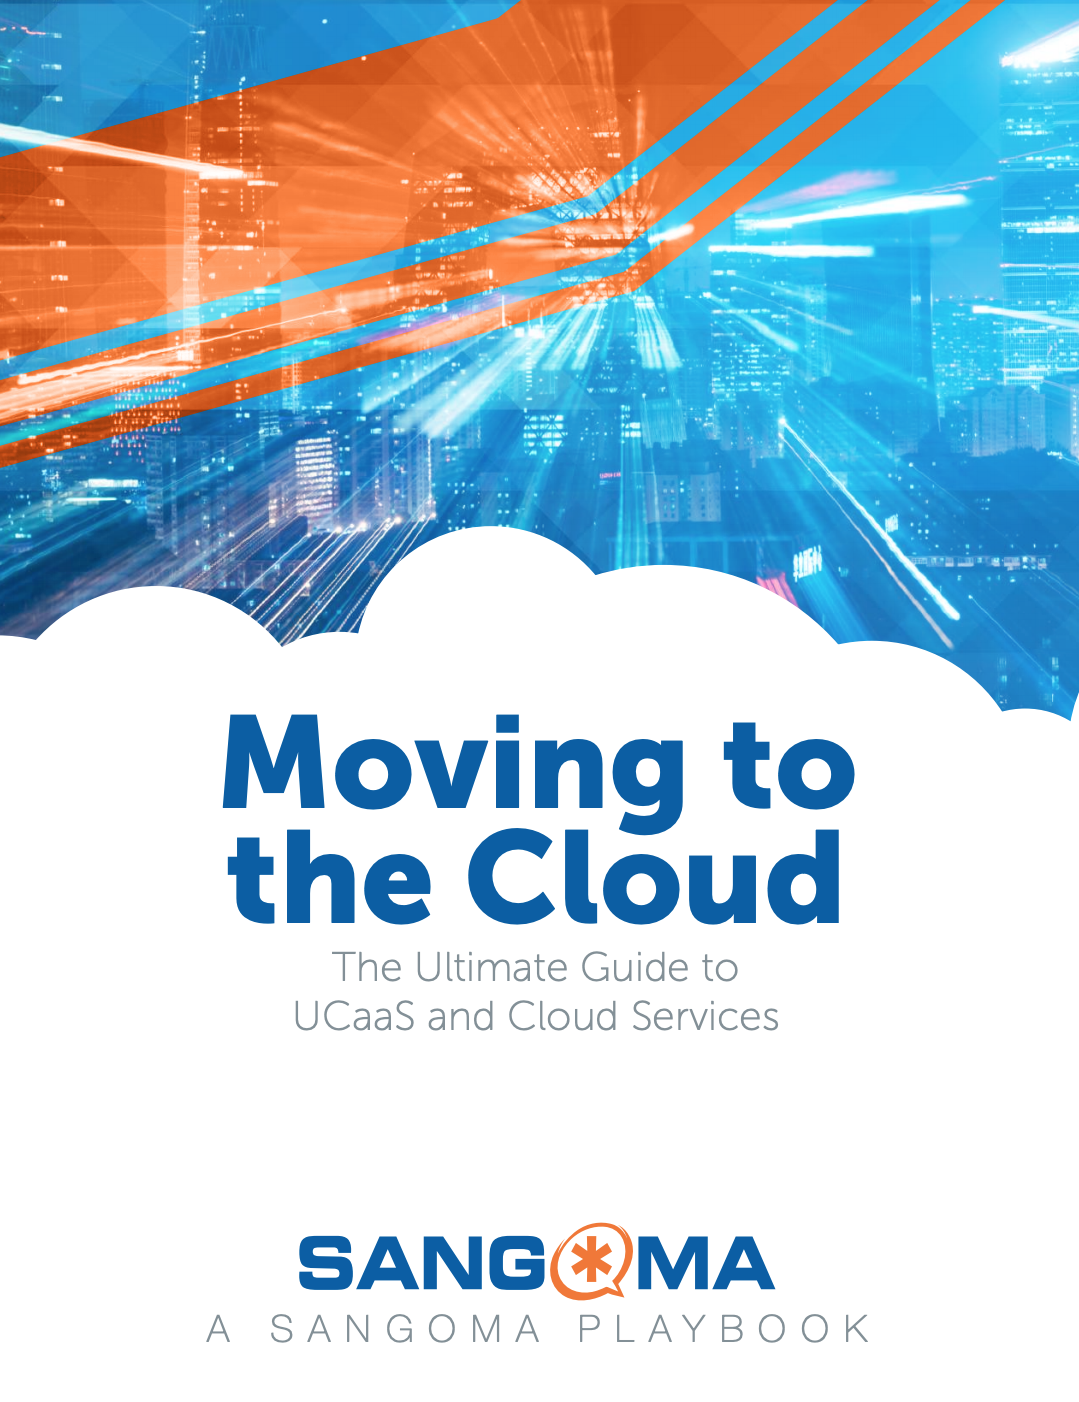 Moving to the Cloud thumbnail